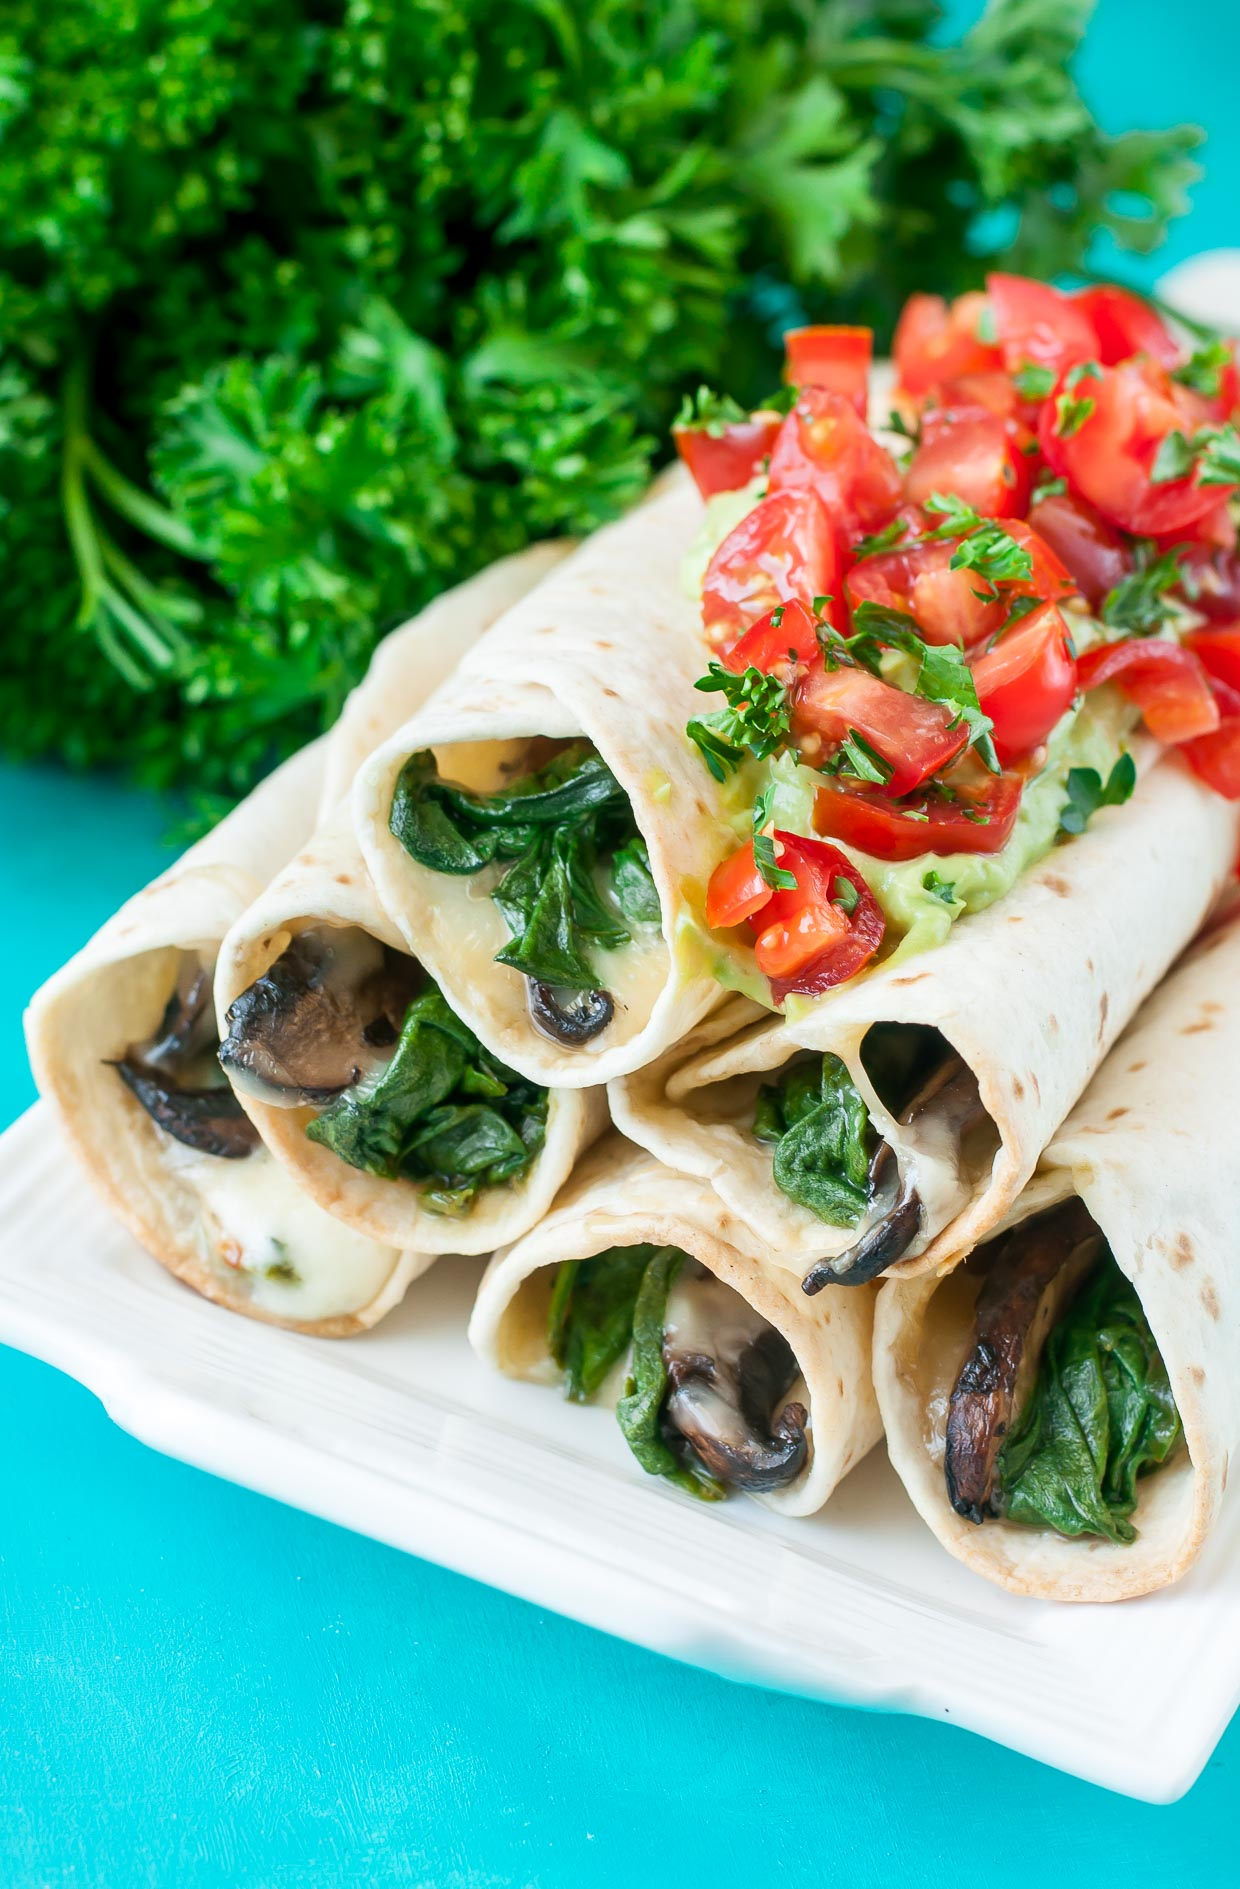 These Cheesy BAKED Spinach and Portobello Flautas are crispy and delicious! Hellooooo veggies!